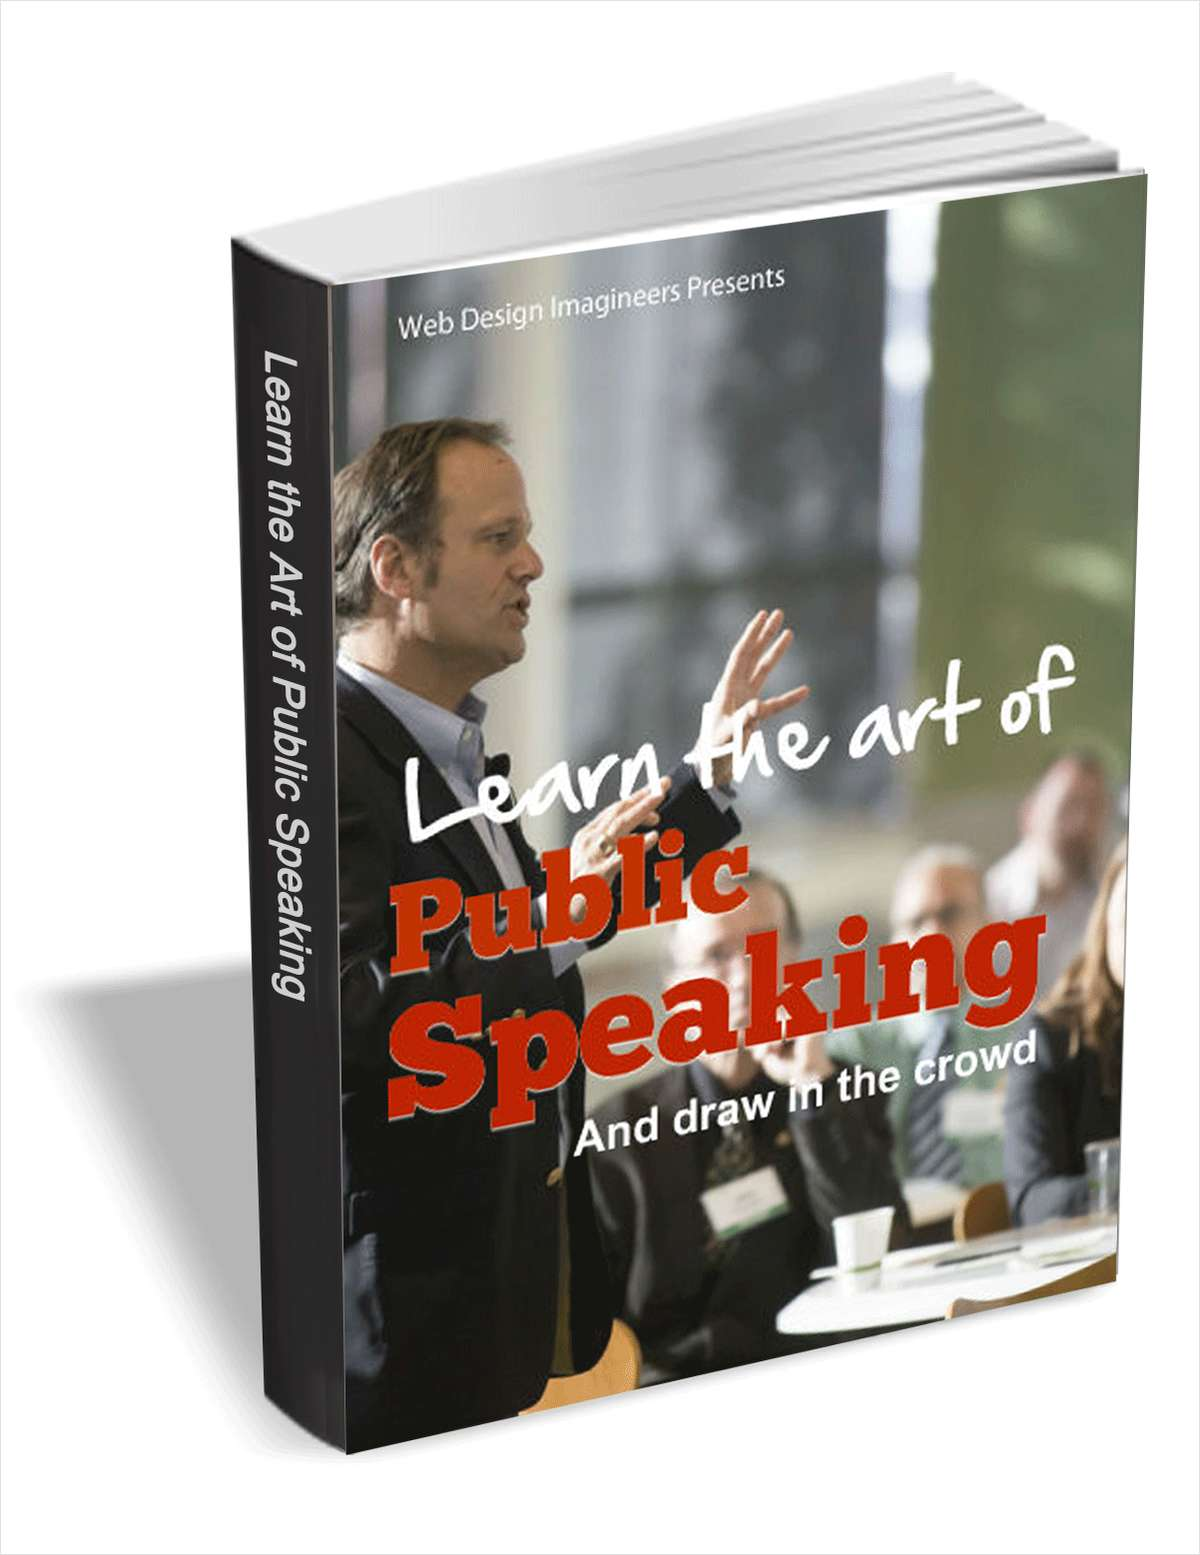 Learn the Art of Public Speaking and Draw in the Crowd